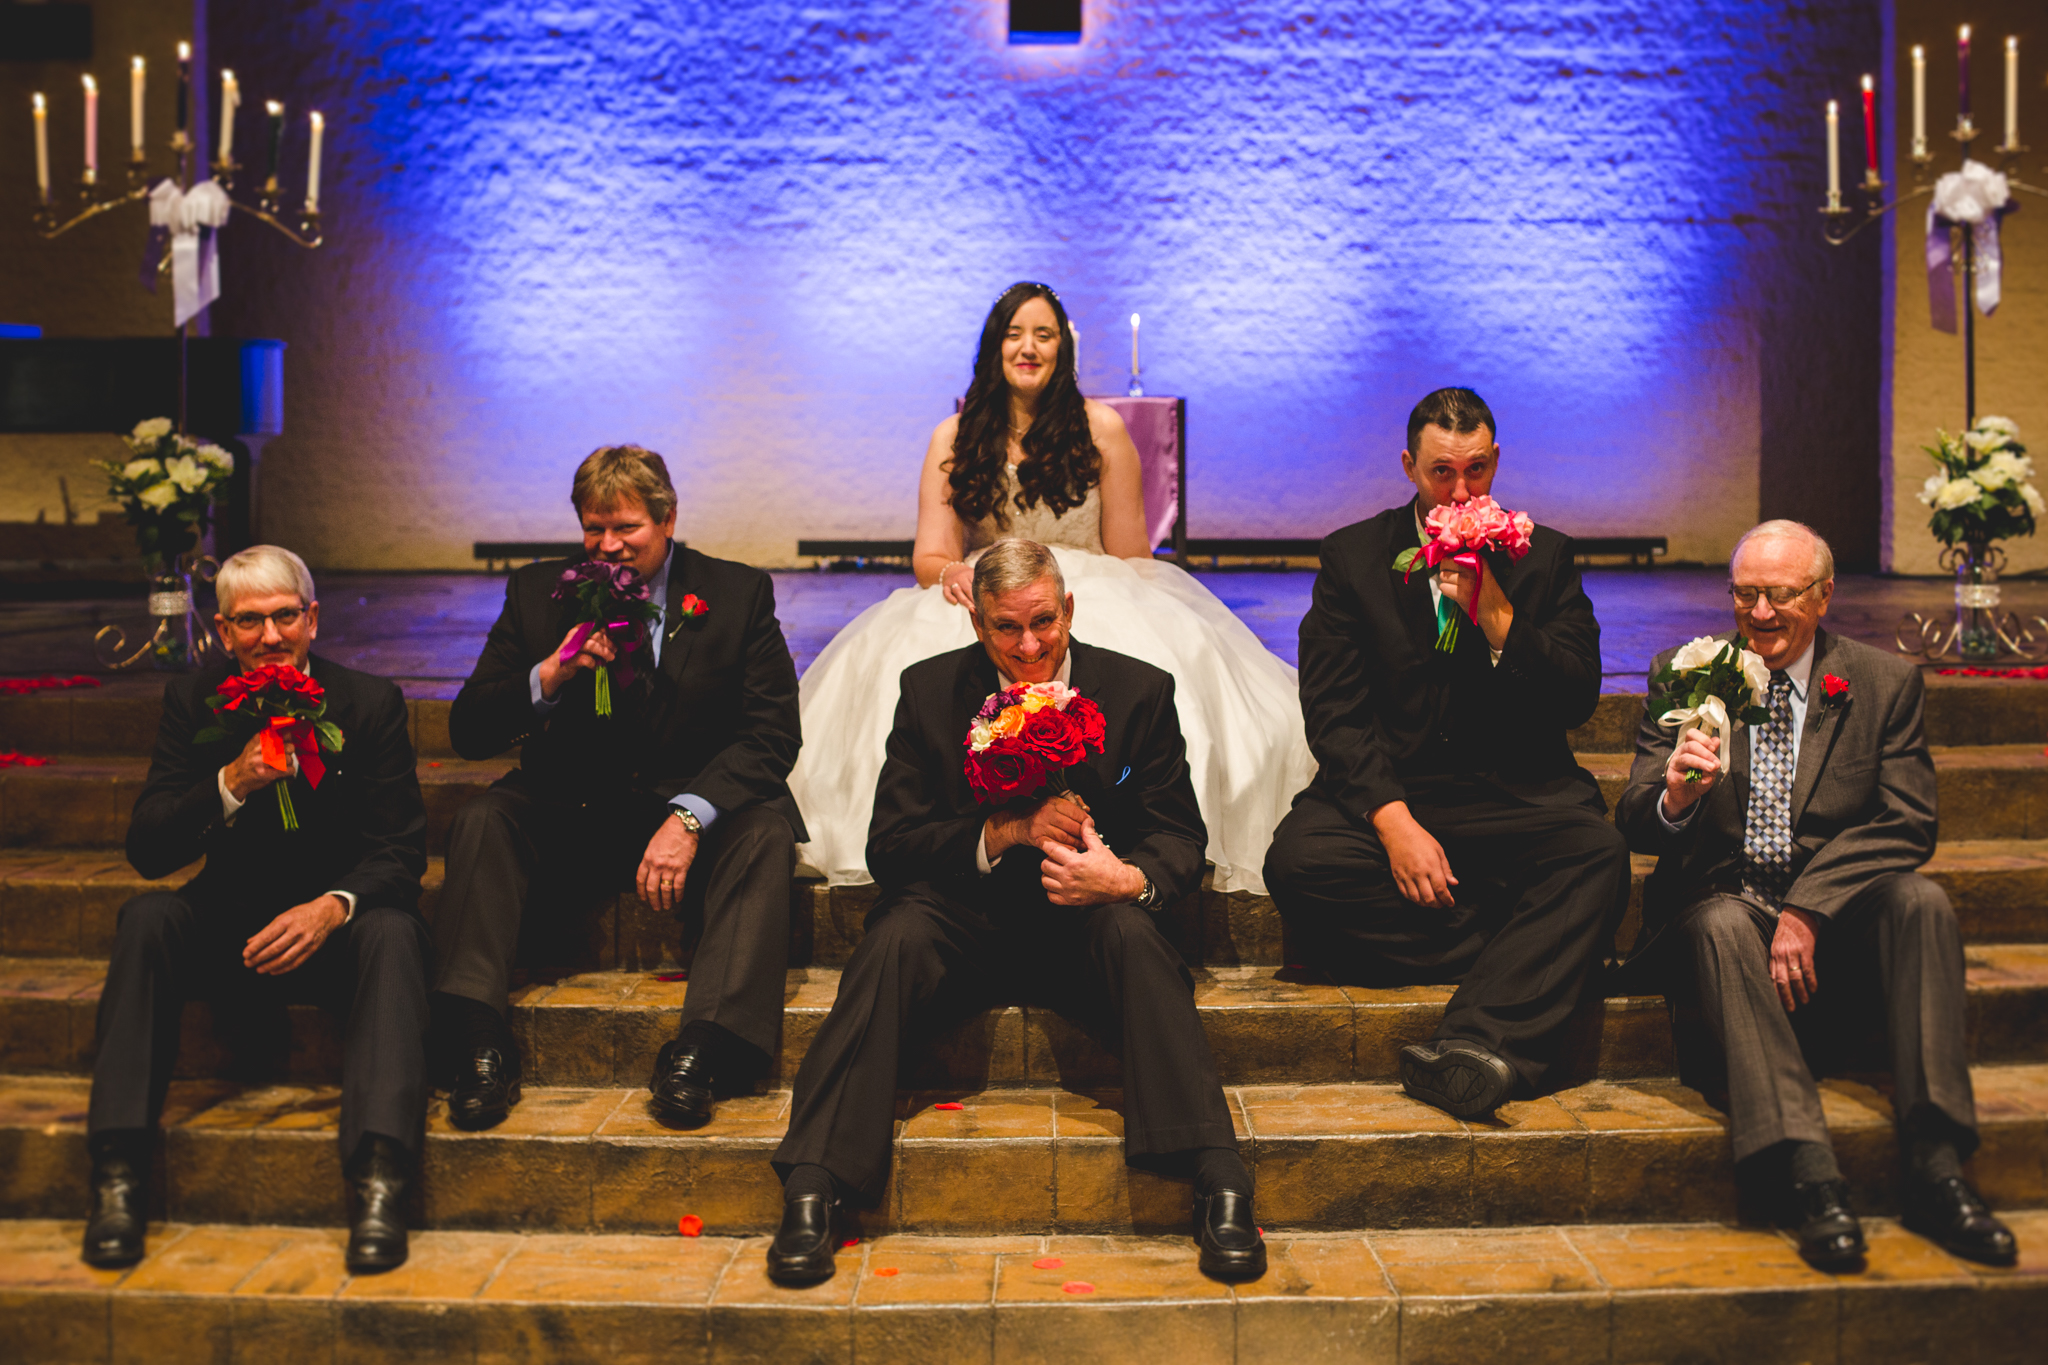 rs fun silly group shot bride men smelling bouquets